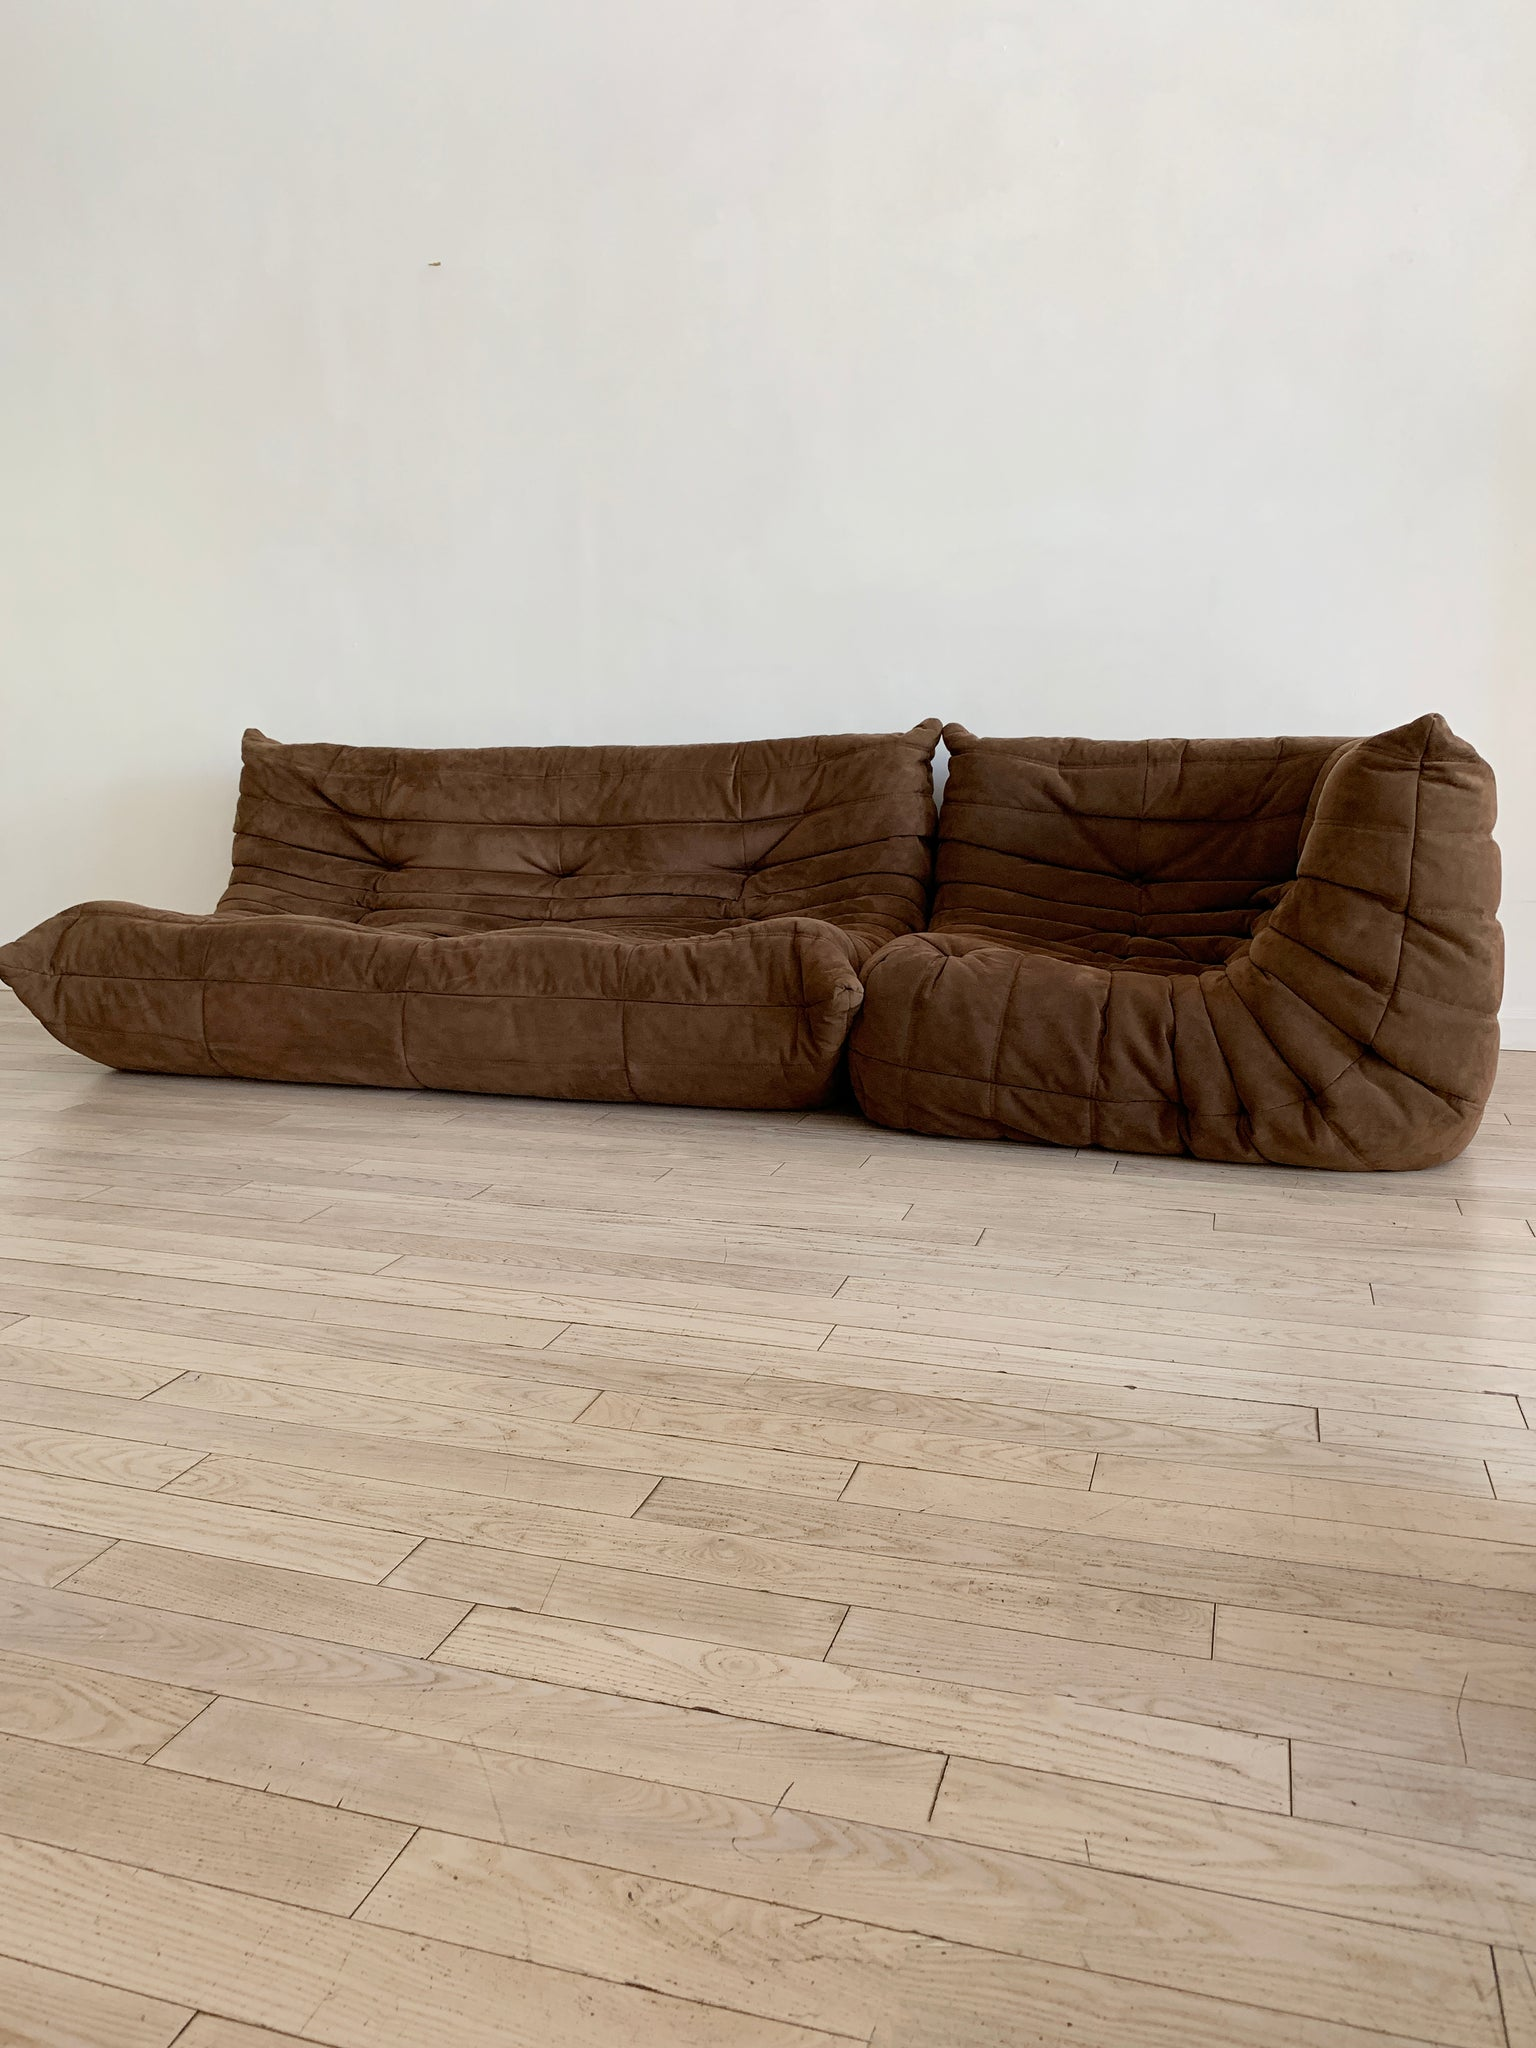 Vintage Brown Togo Sofa Set by Michel Ducaroy for Ligne Roset - 2 Pieces